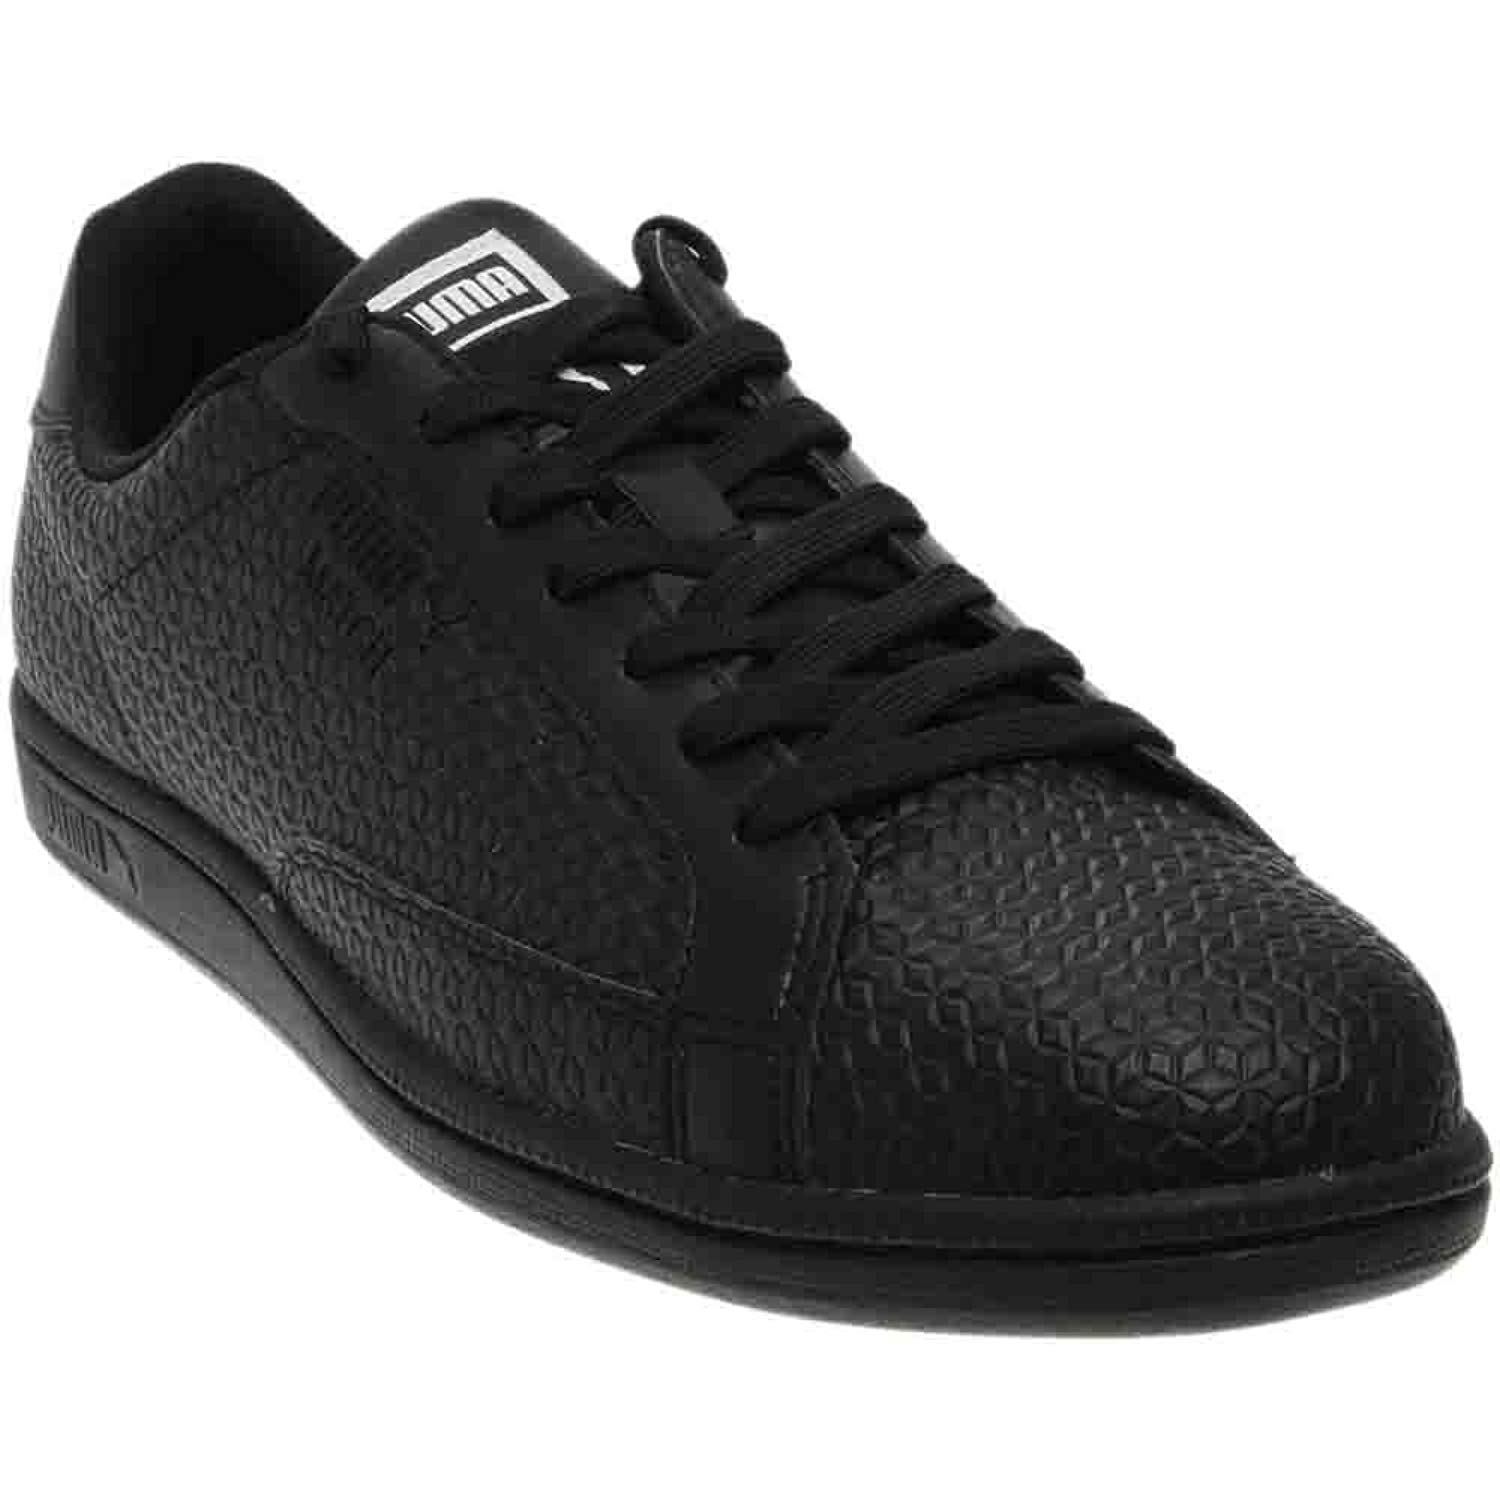 311f759c1235 Details about PUMA Men s Match Emboss Fashion Sneaker